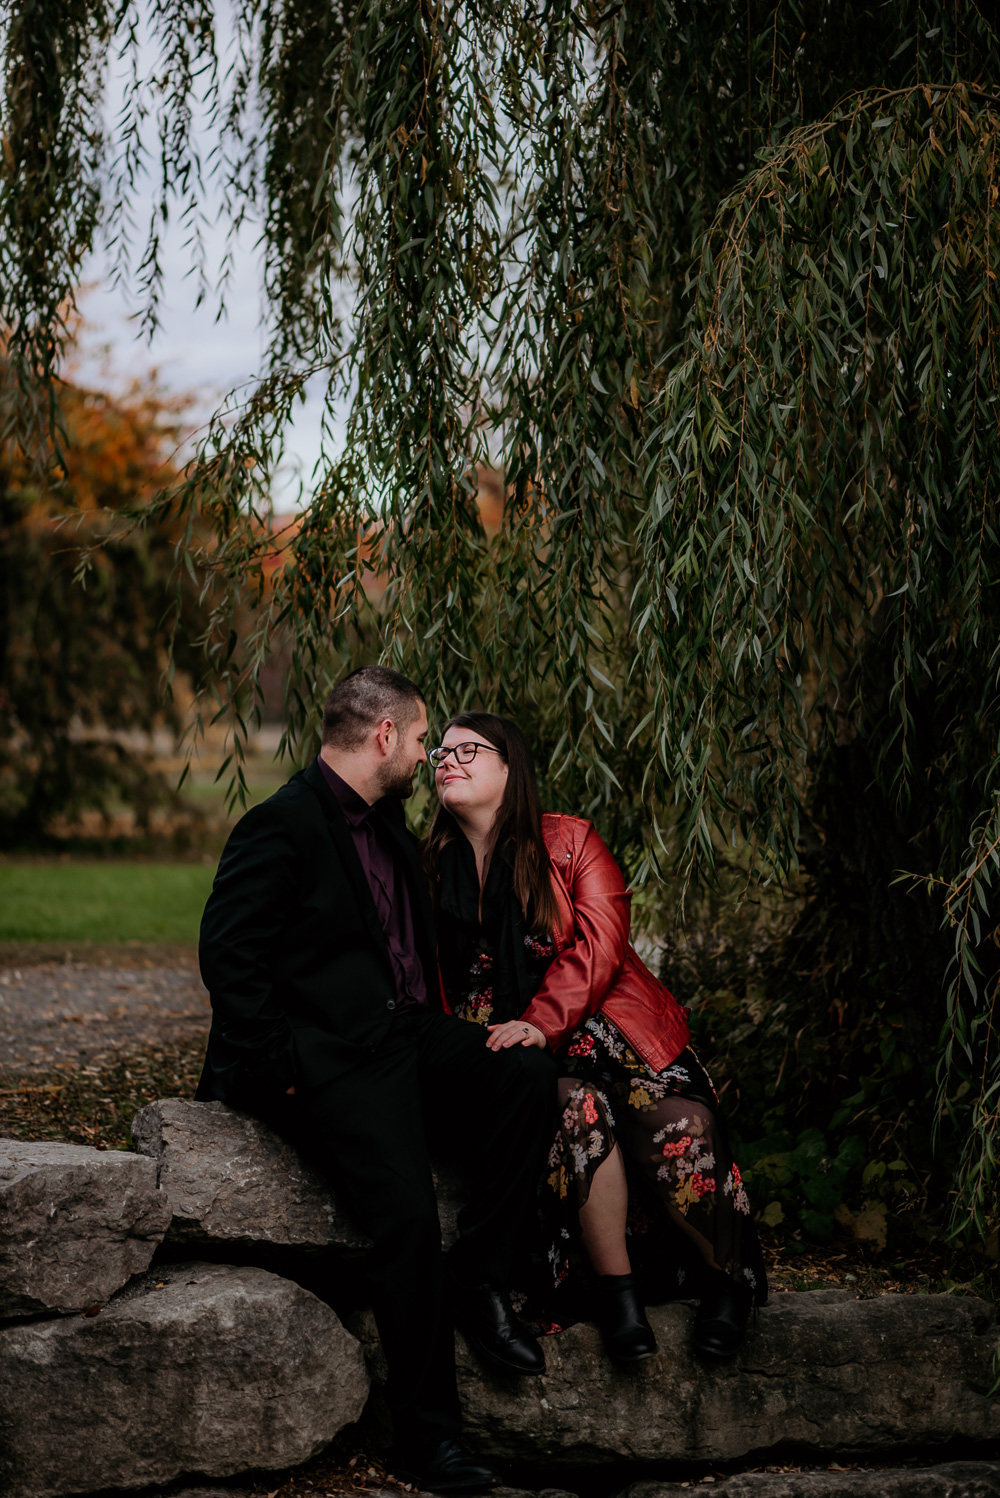 Engaged couple sitting on rocks under a willow tree. The bride leaning in to kiss her fiancé as she smiles. Photo taken by Ottawa engagement Photographer Samantha Danis.